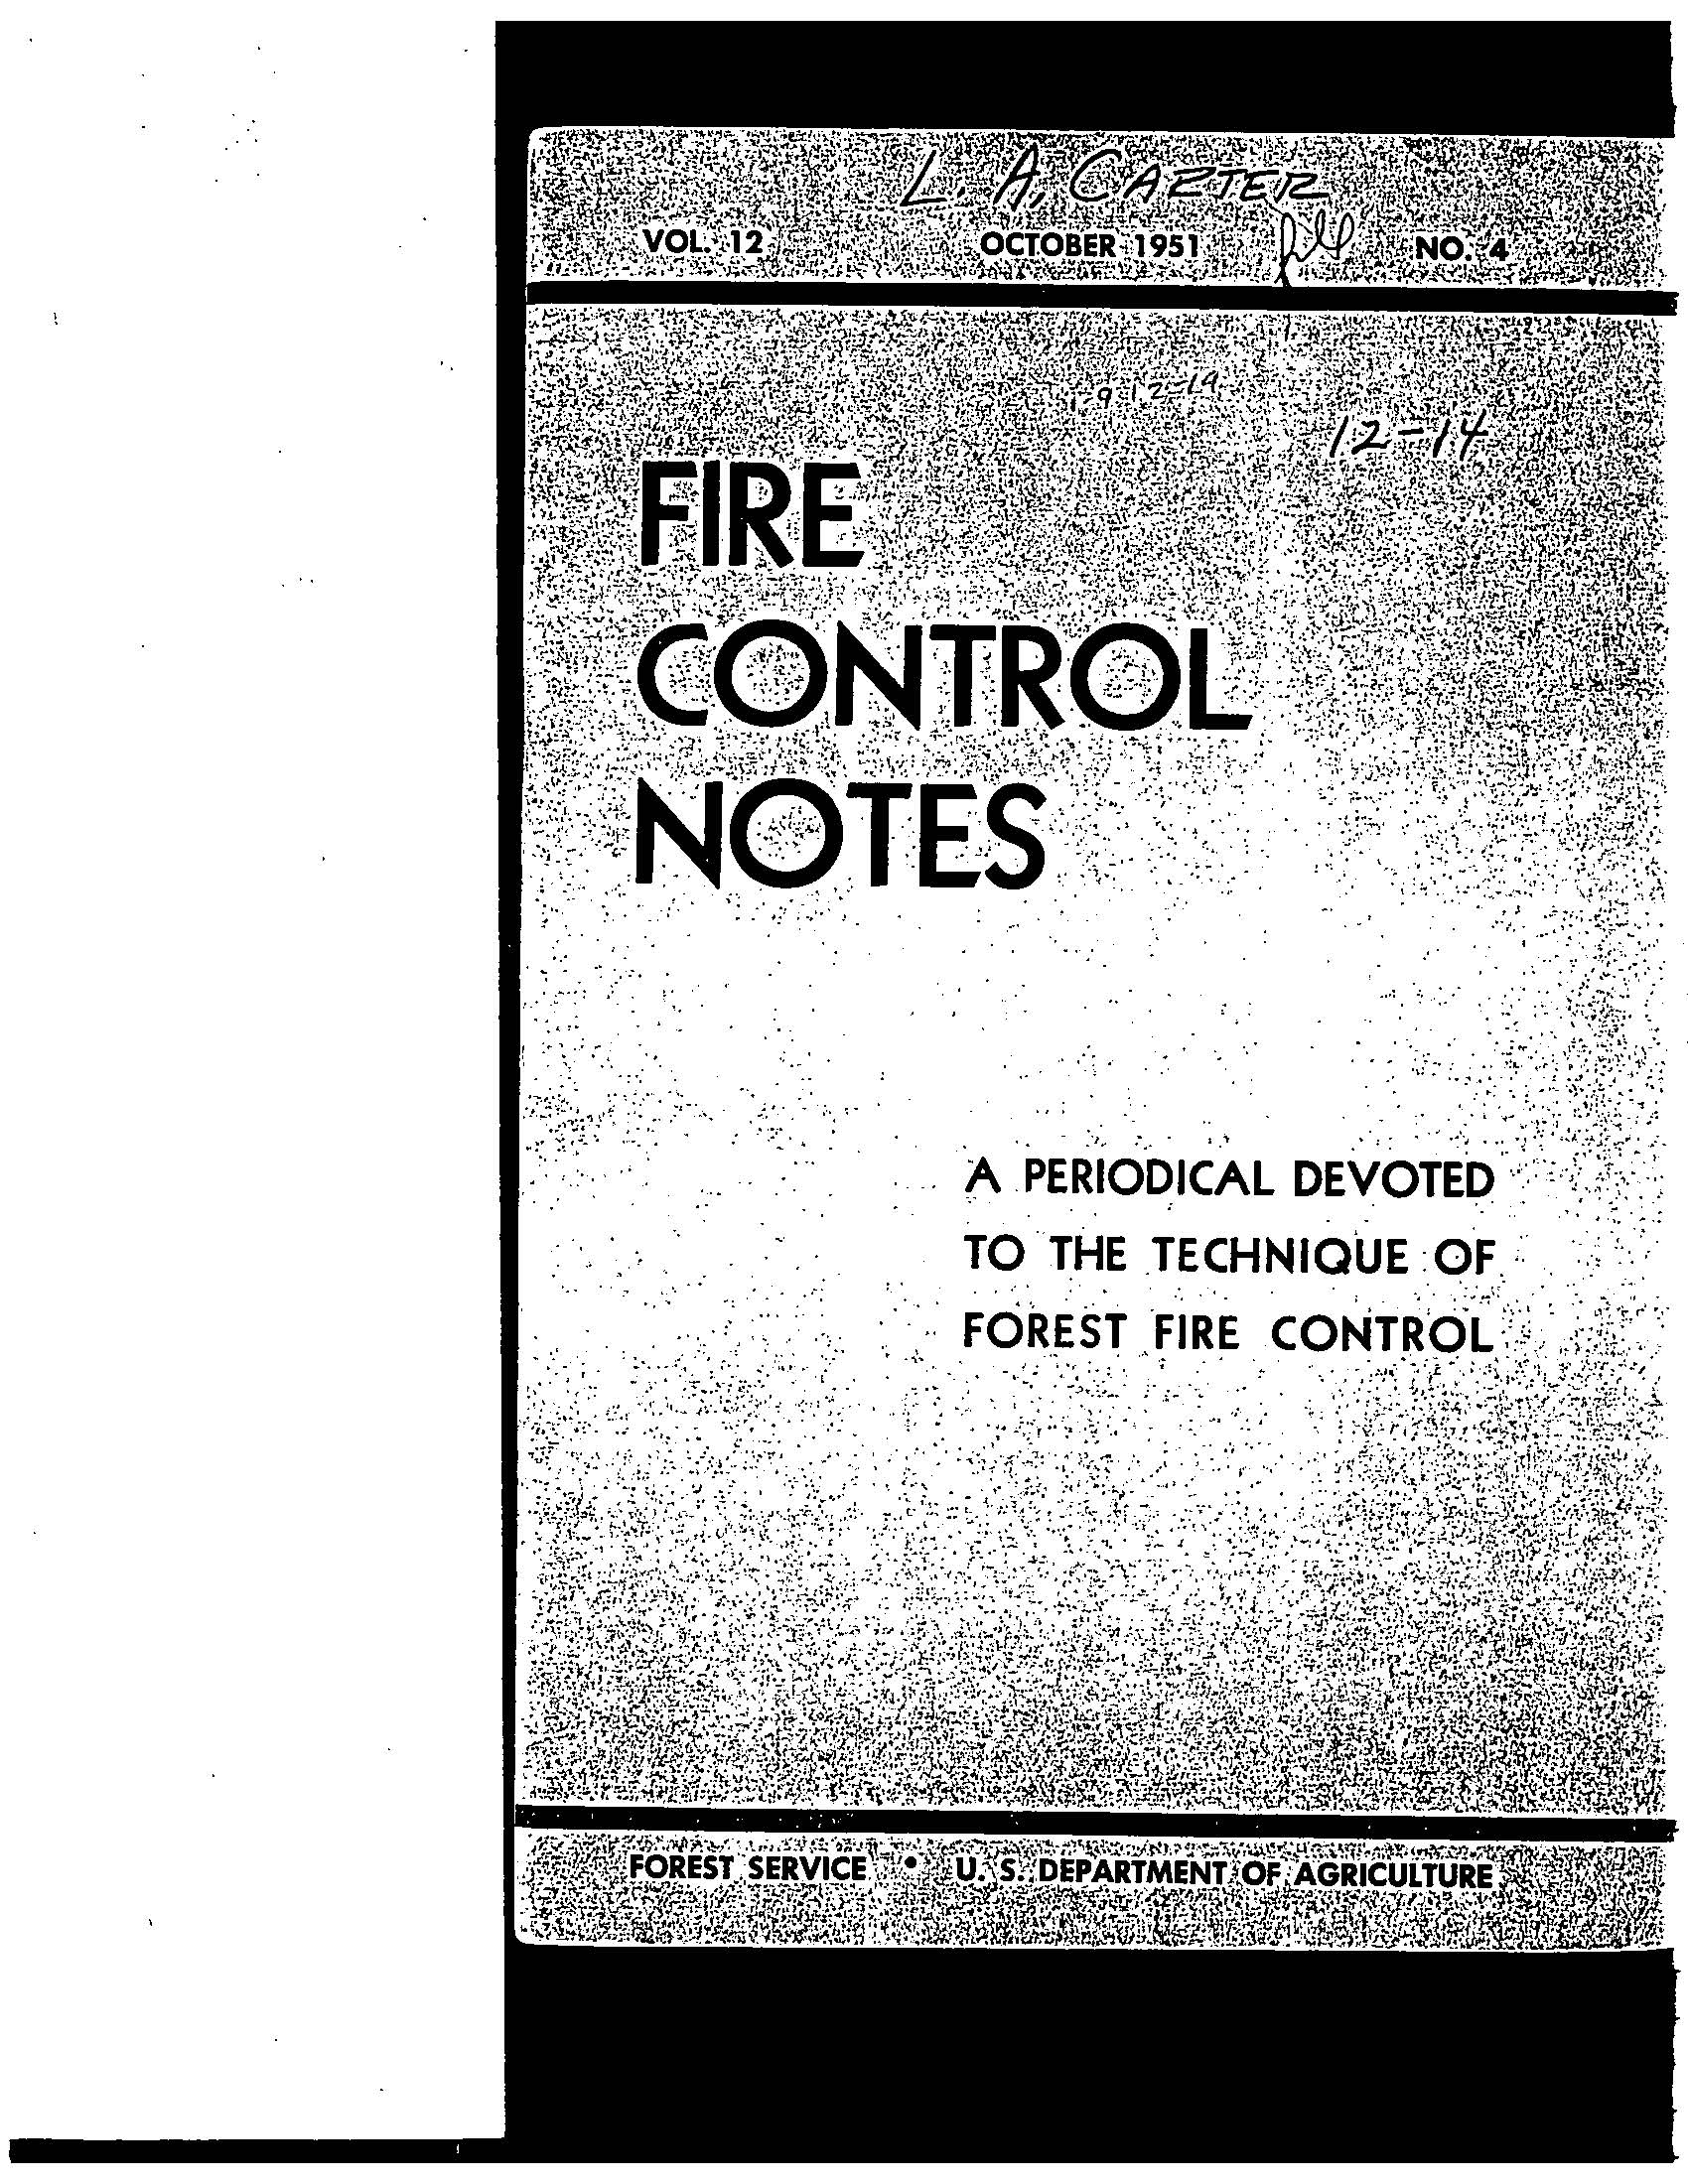 Cover of Fire Management Today Volume 12, Issue 04